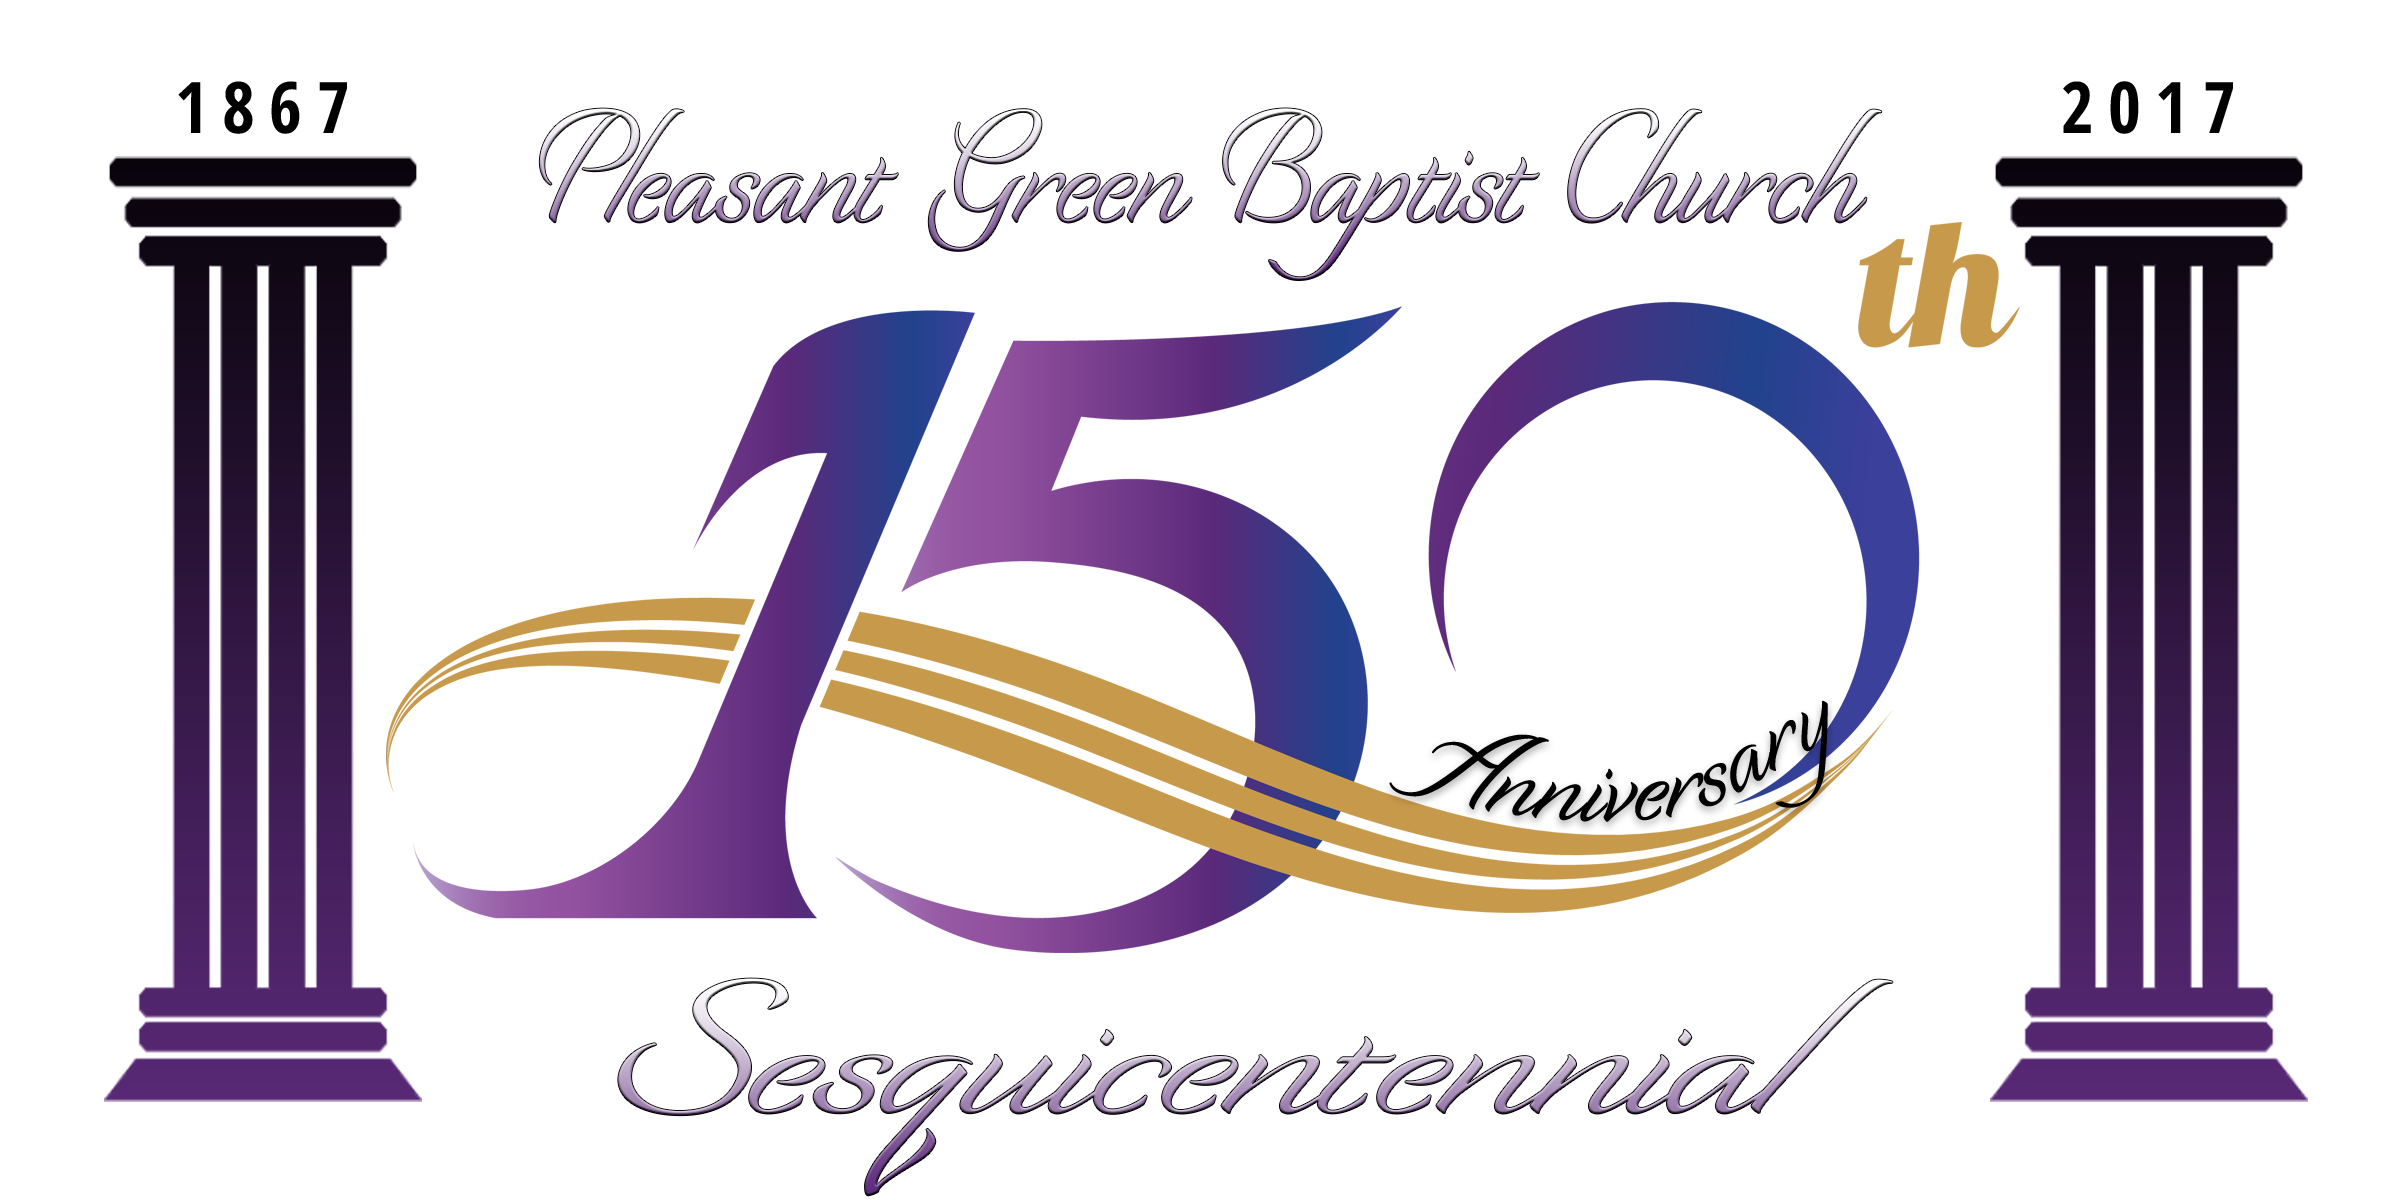 graphic royalty free download Celebrate clipart church celebration. Pleasant green baptist the.